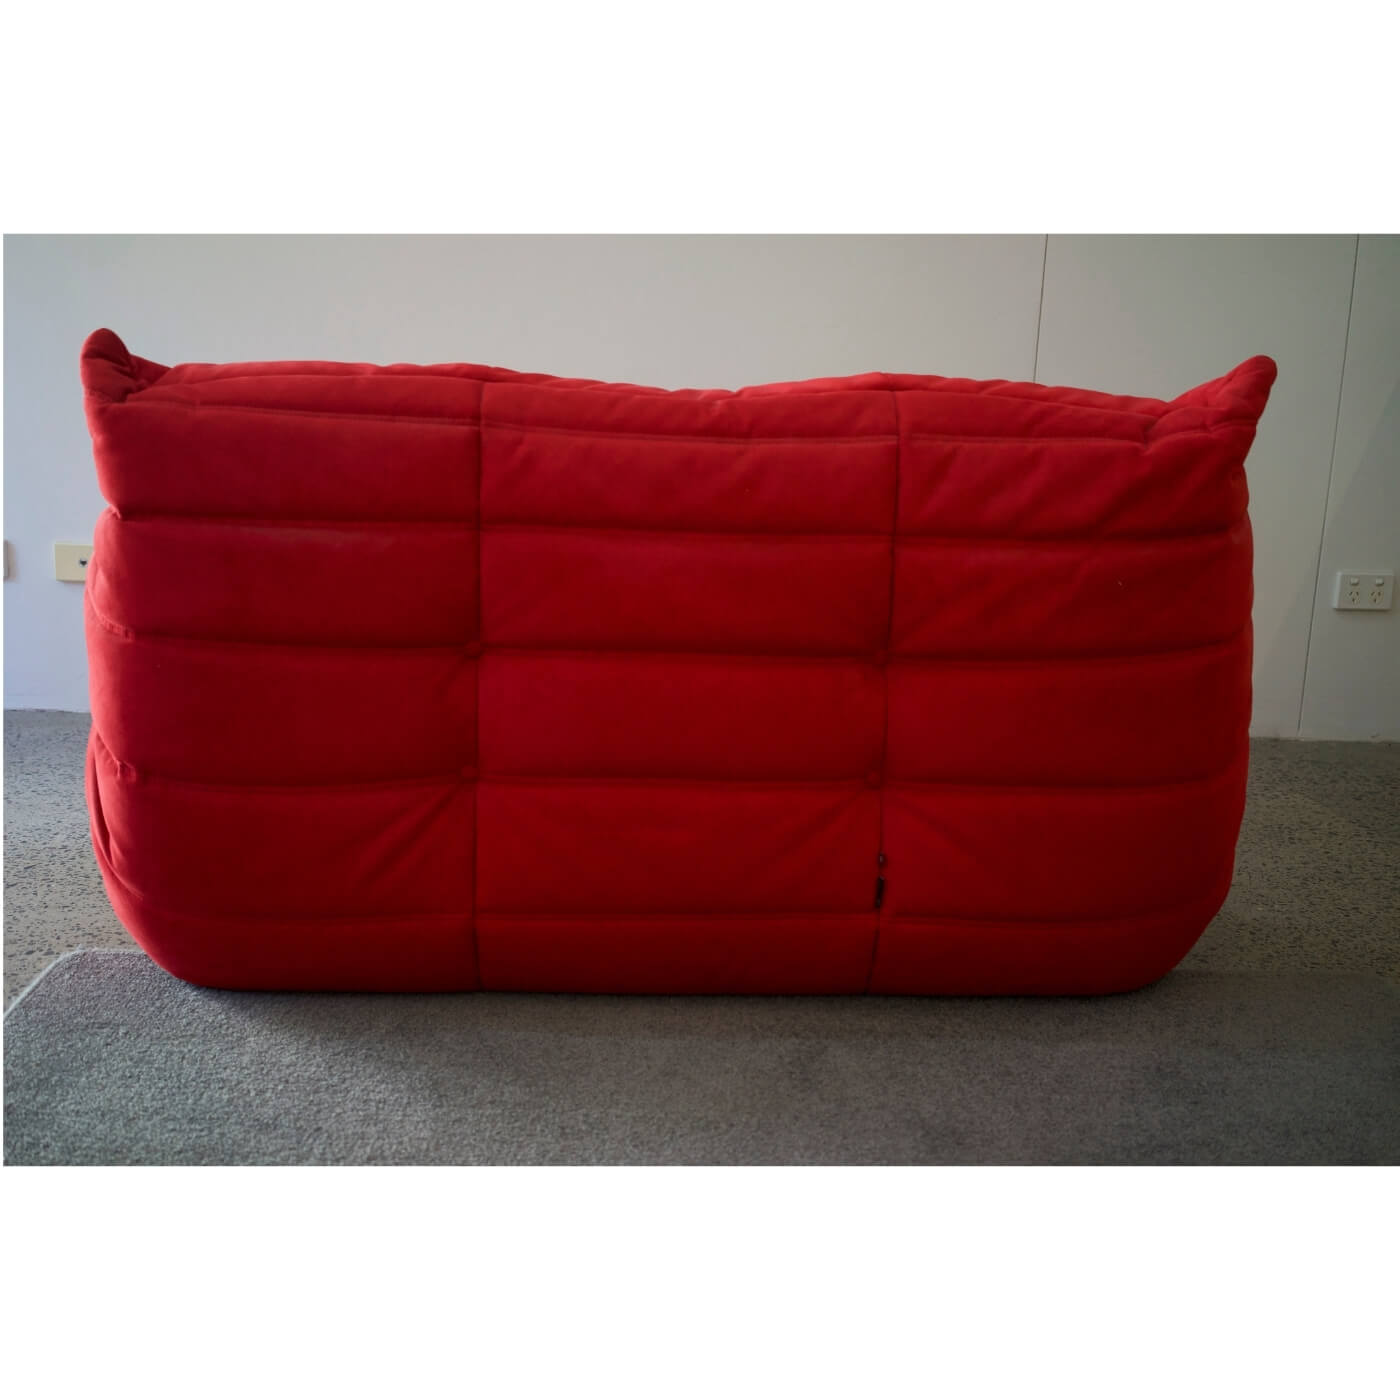 Togo sofa by Ligne Roset in Angel Red alcantara fabric, second hand on Two Design Lovers